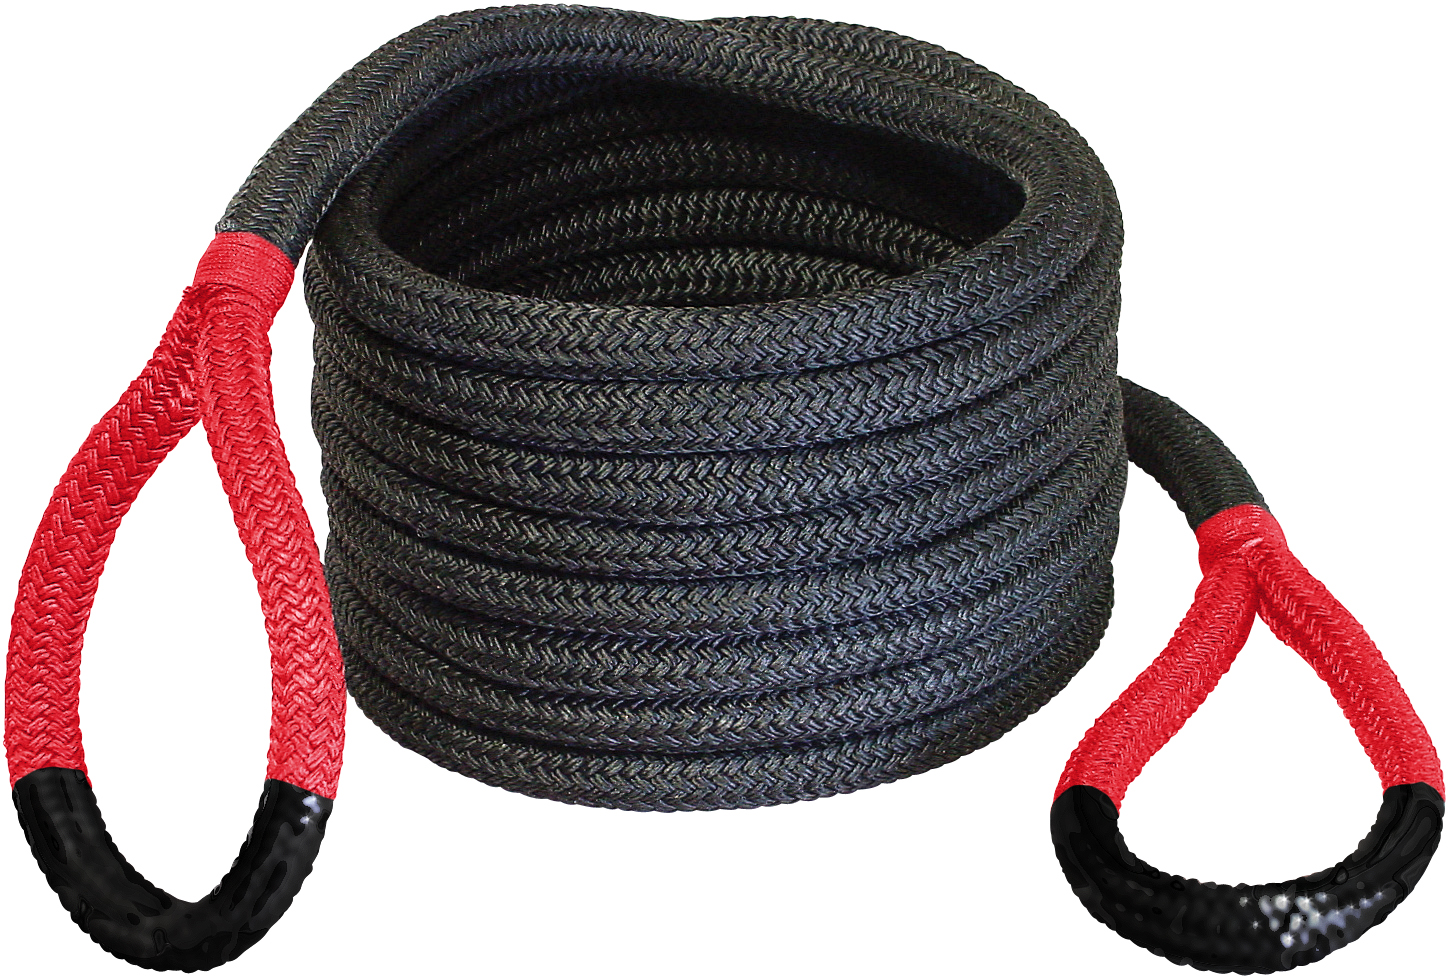 176680GRG Bubba Rope Recovery Strap 7/8 Inch Round X 30 Foot Long